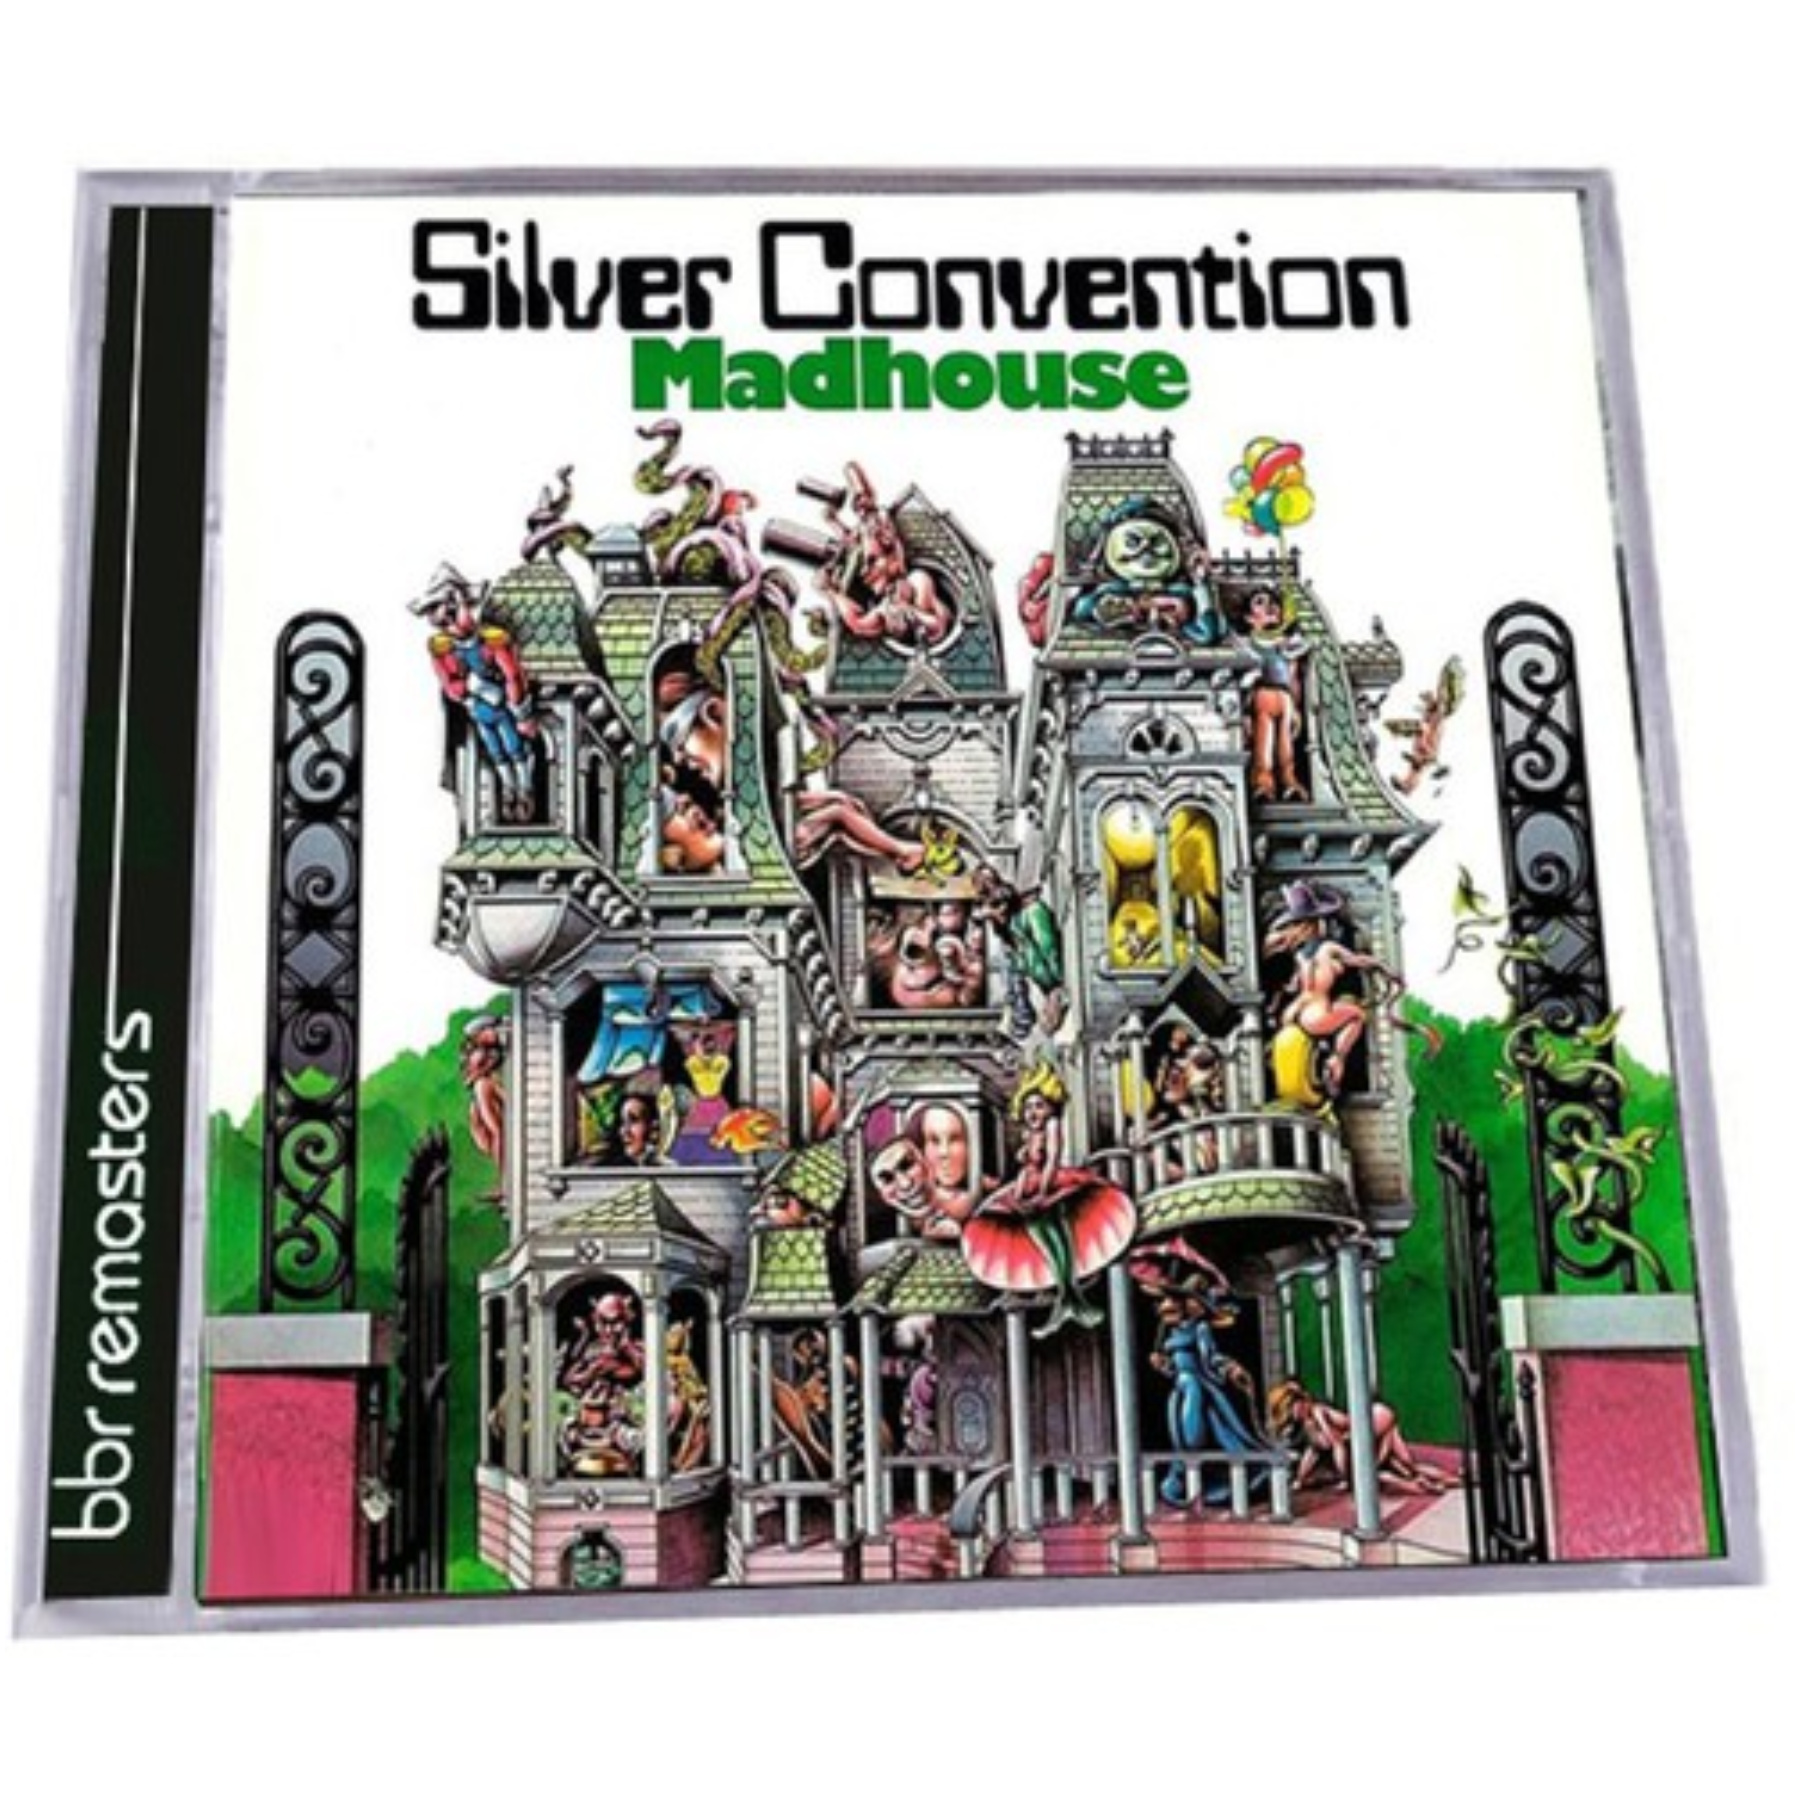 Silver Convention Madhouse CD 501392905793